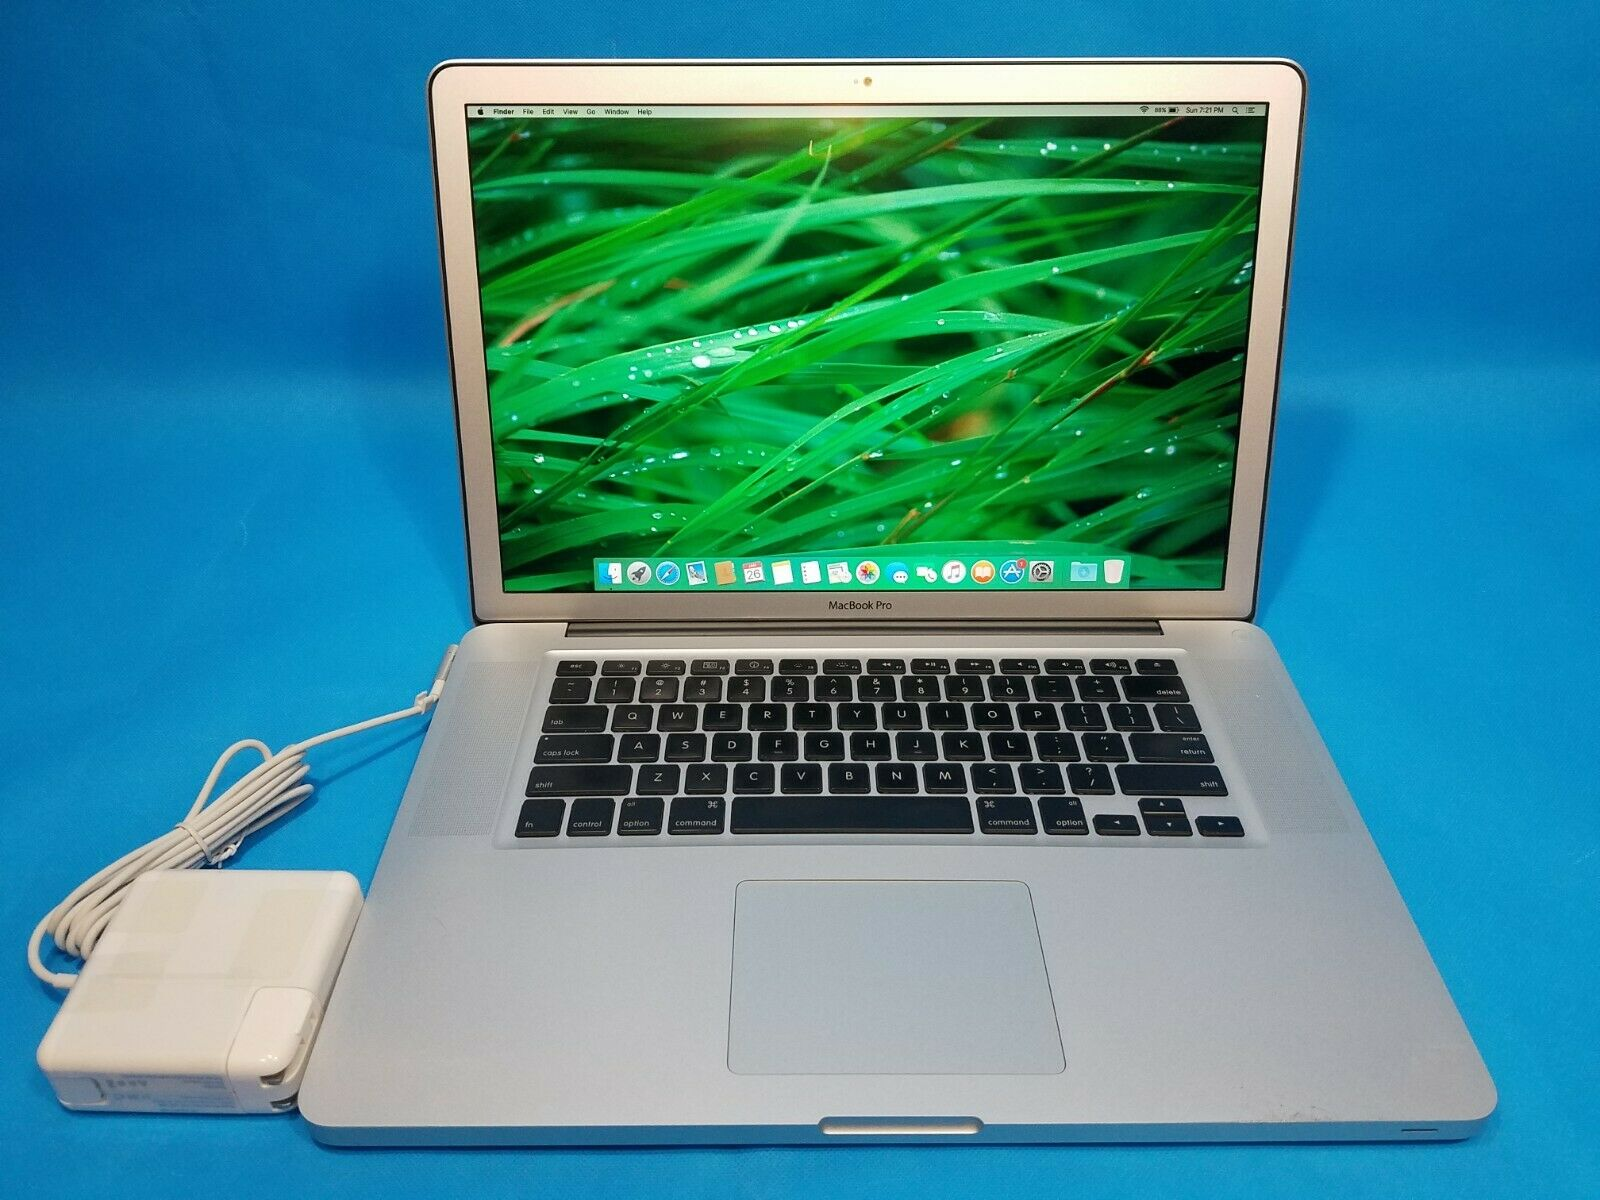 Apple MacBook Pro 15 Pre Retina 2.80GHz i7 8GB RAM 500GB SSD OSX-2017 EXCELLENT!. Buy it now for 797.77